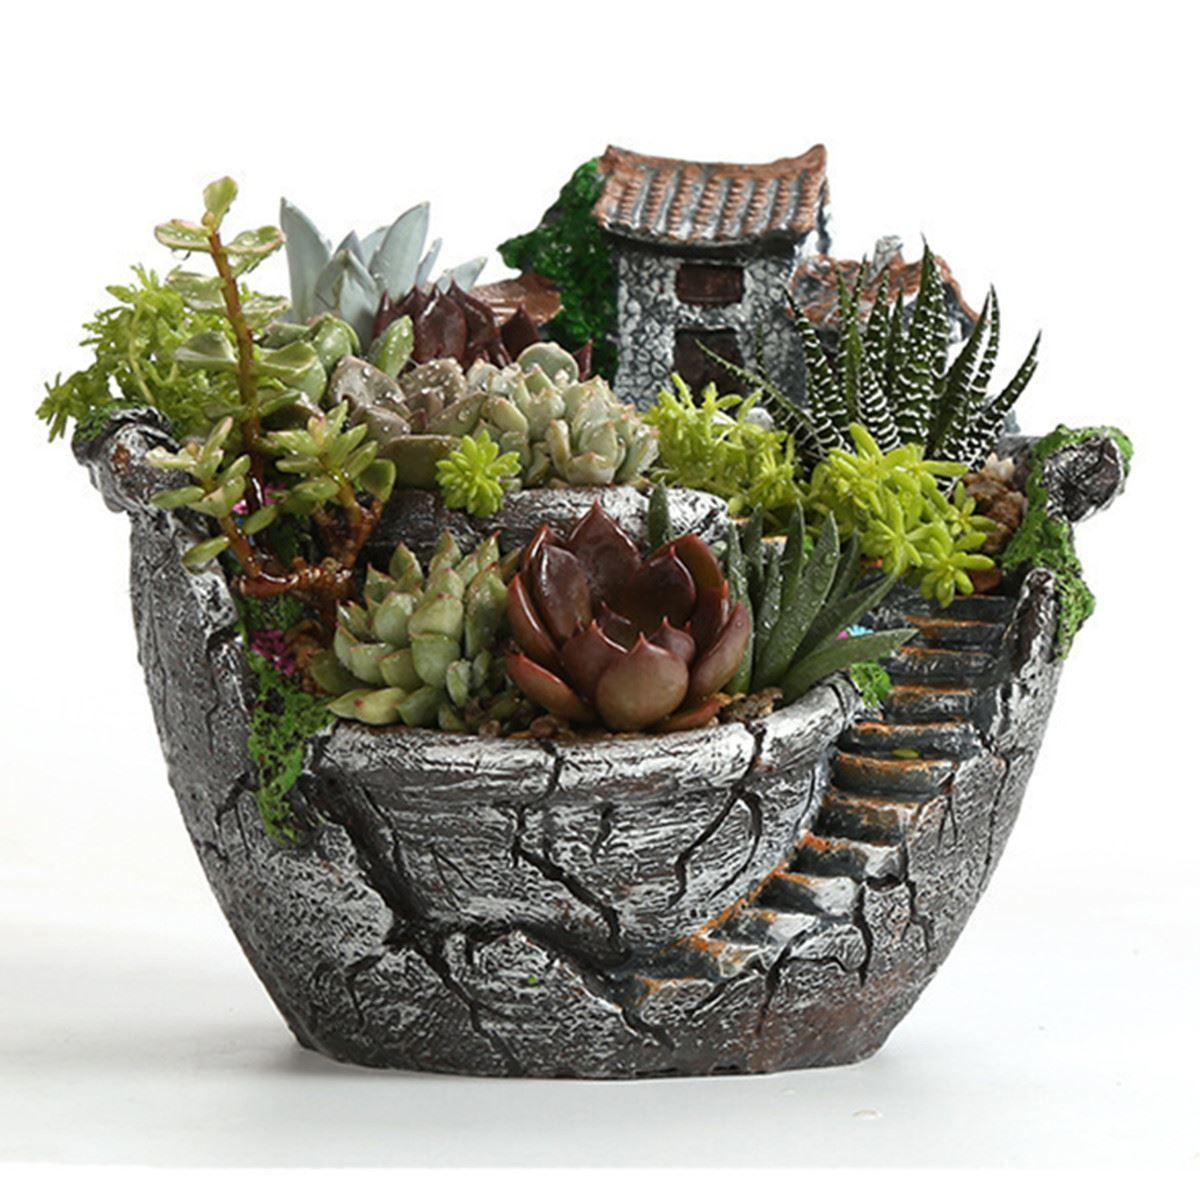 Online Cheap Resin Garden Cactus Succulent Plant Pot Herb Flower Planter  Box Nursery Pots Home Room Decor Ornament Garden Tools Supplies By  Kaiyue608 ...